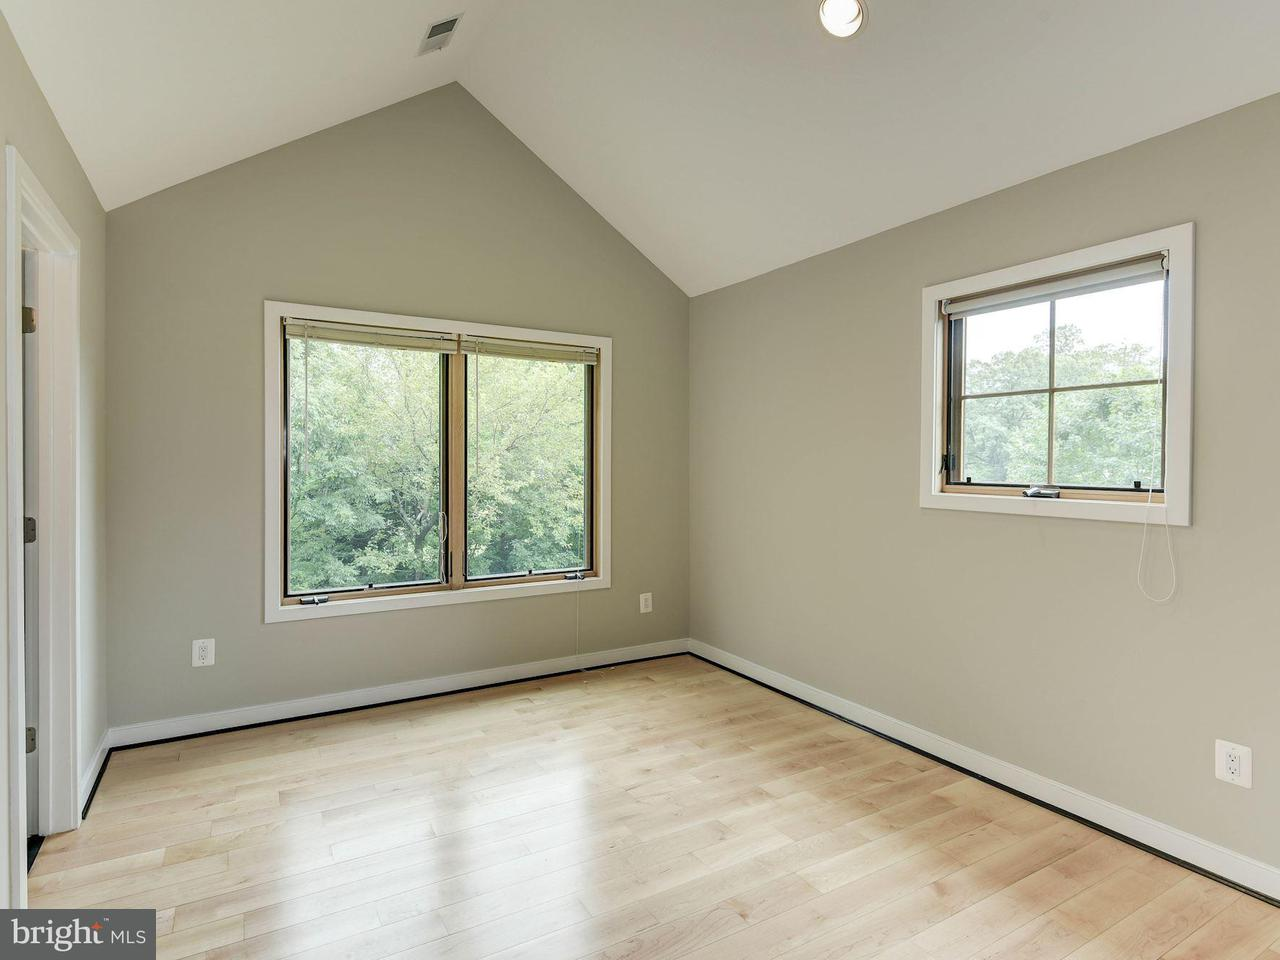 Additional photo for property listing at 314 Lee Street 314 Lee Street Falls Church, Virginia 22046 United States